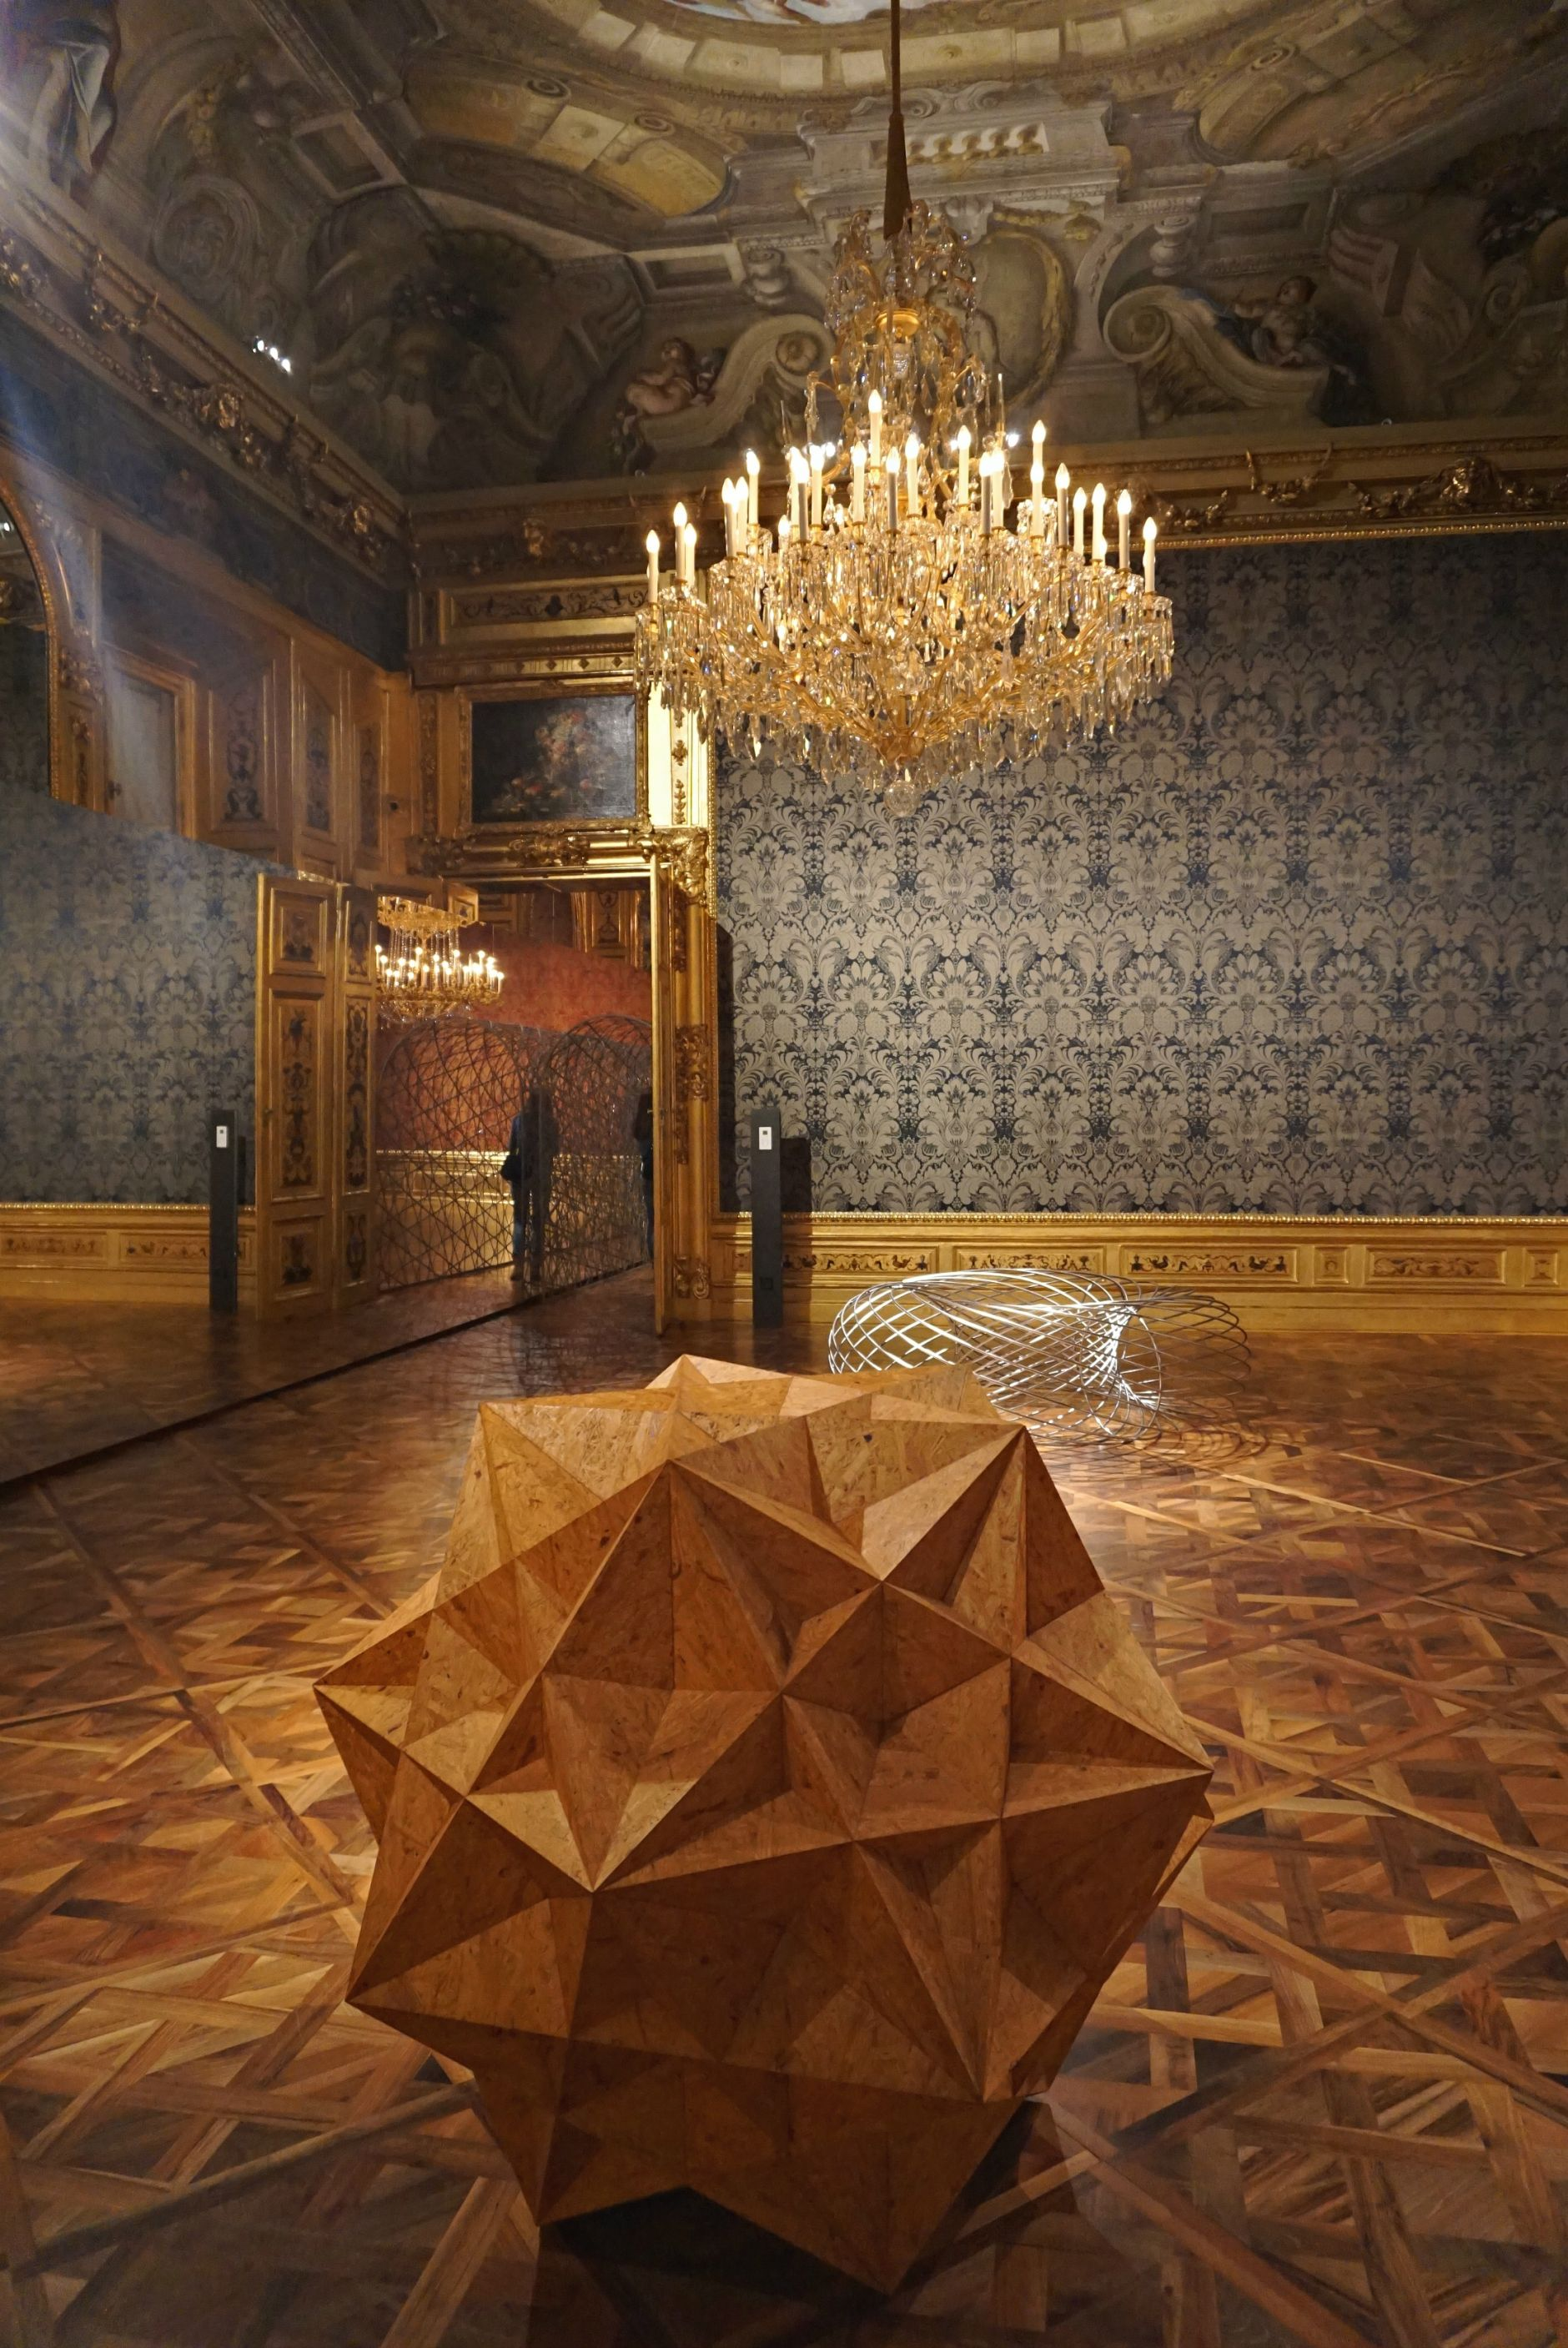 dc-art-olafur-eliasson-baroque-baroque-the-winter-palace-of-prince-eugene-of-savoy-vienna-06